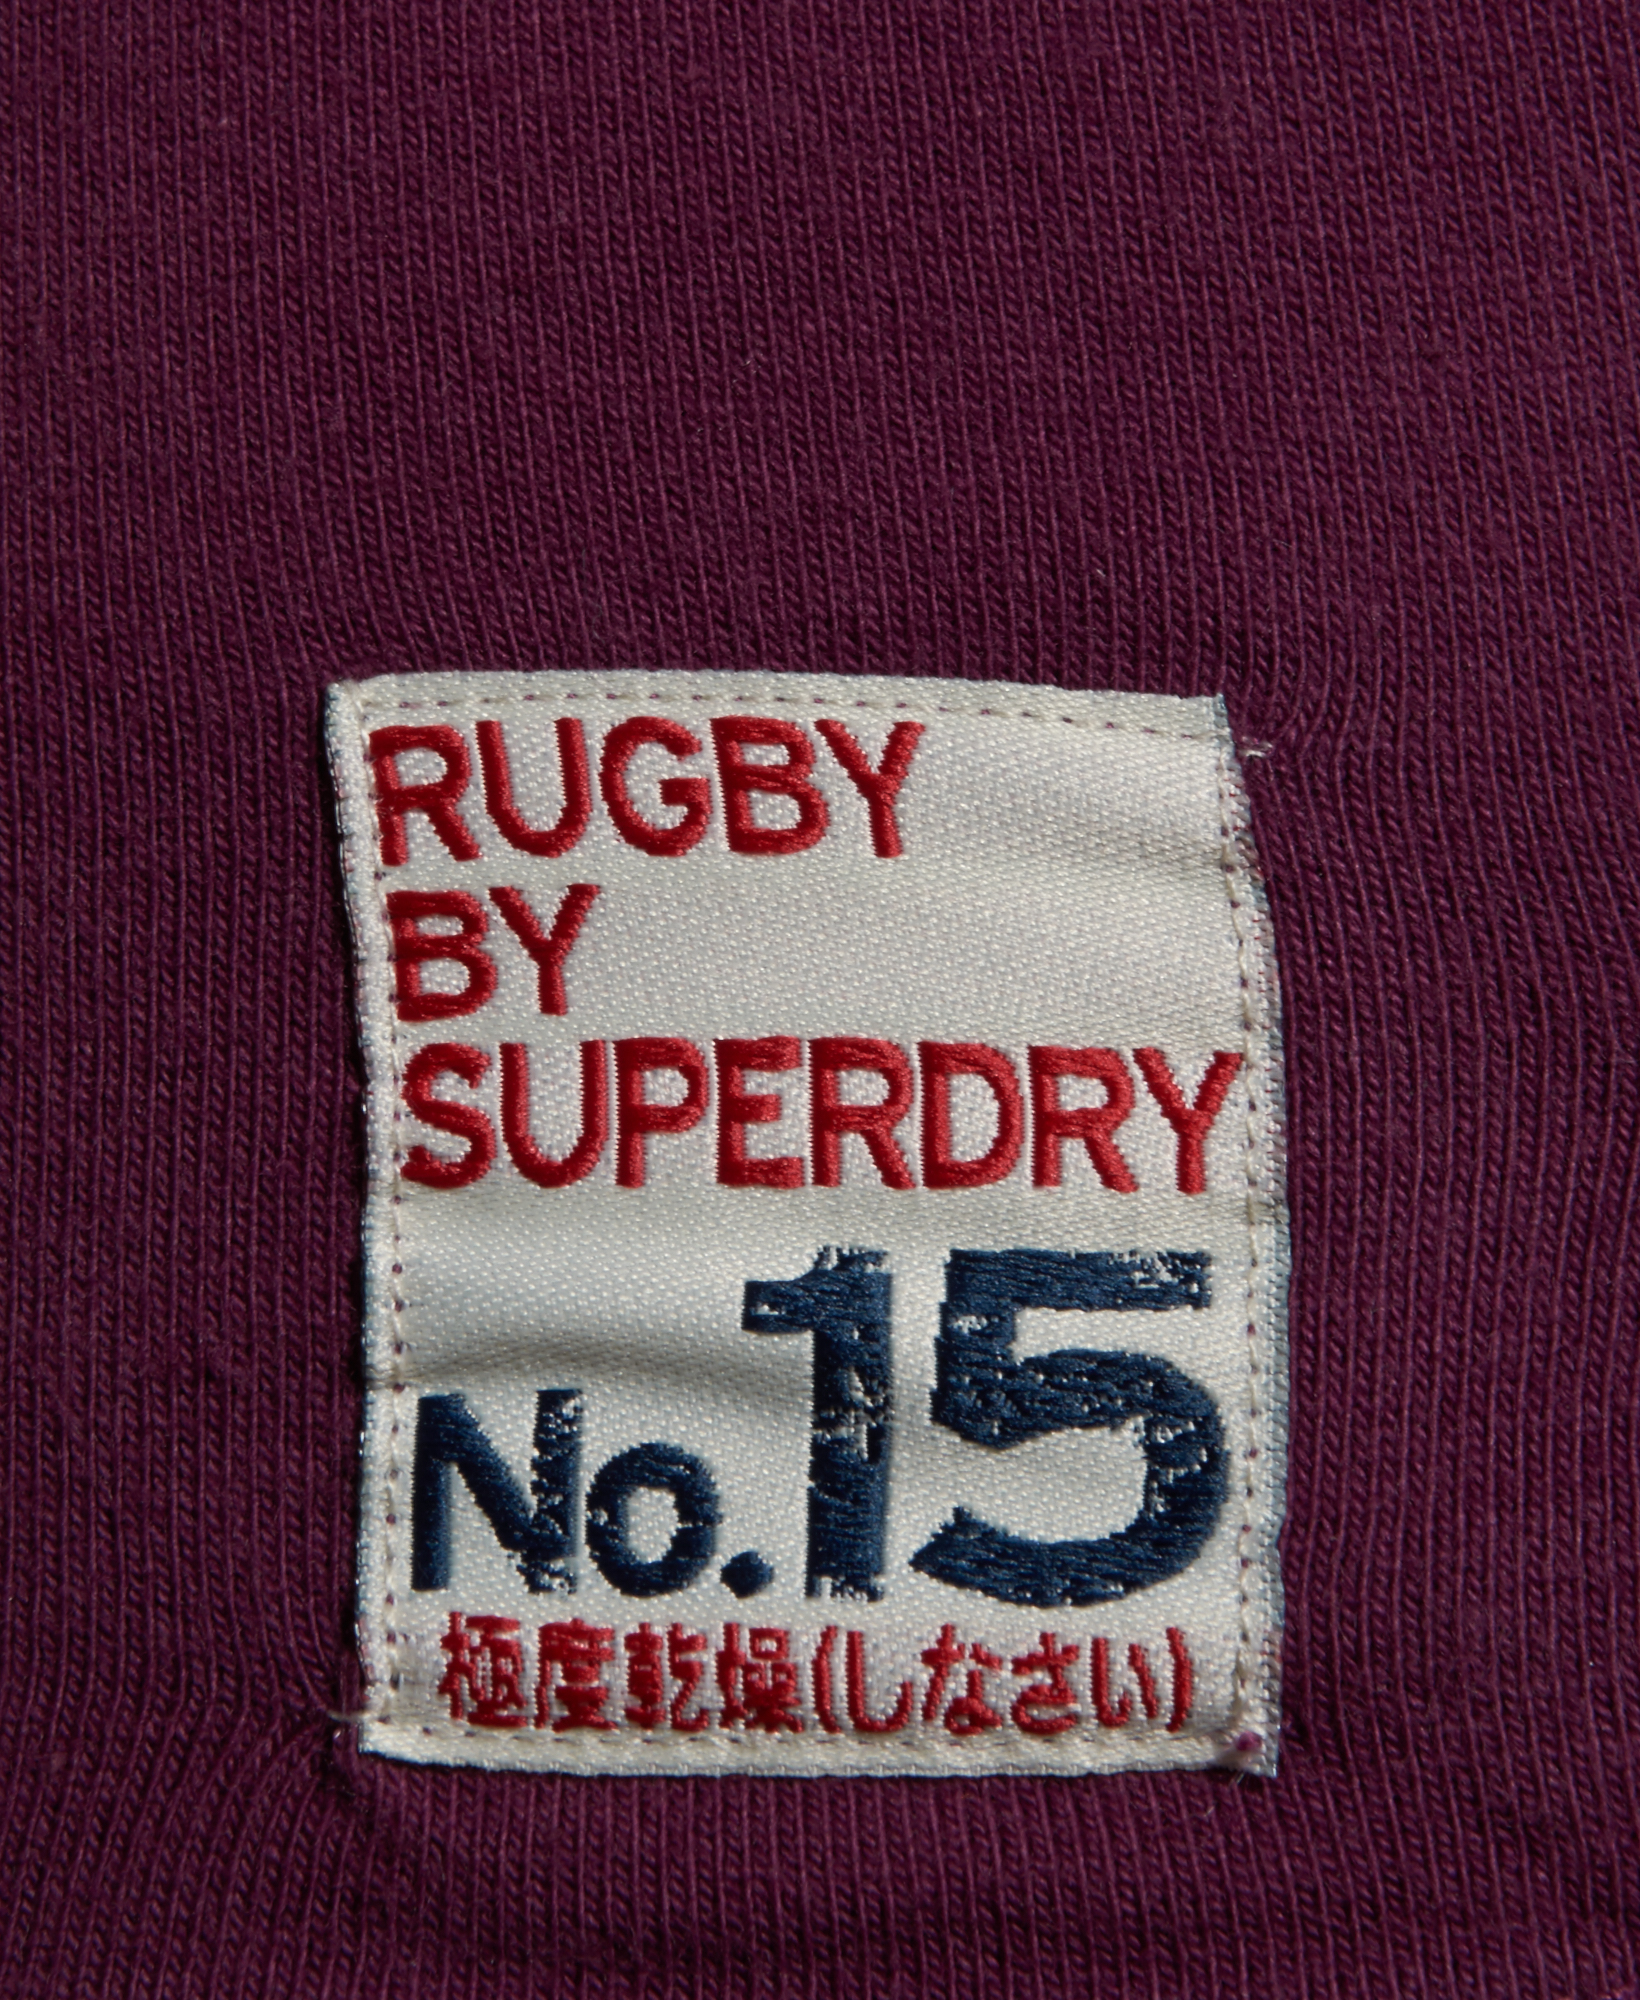 New Mens Superdry Factory Second World Legends Rugby Shirt Washed Gold Mix